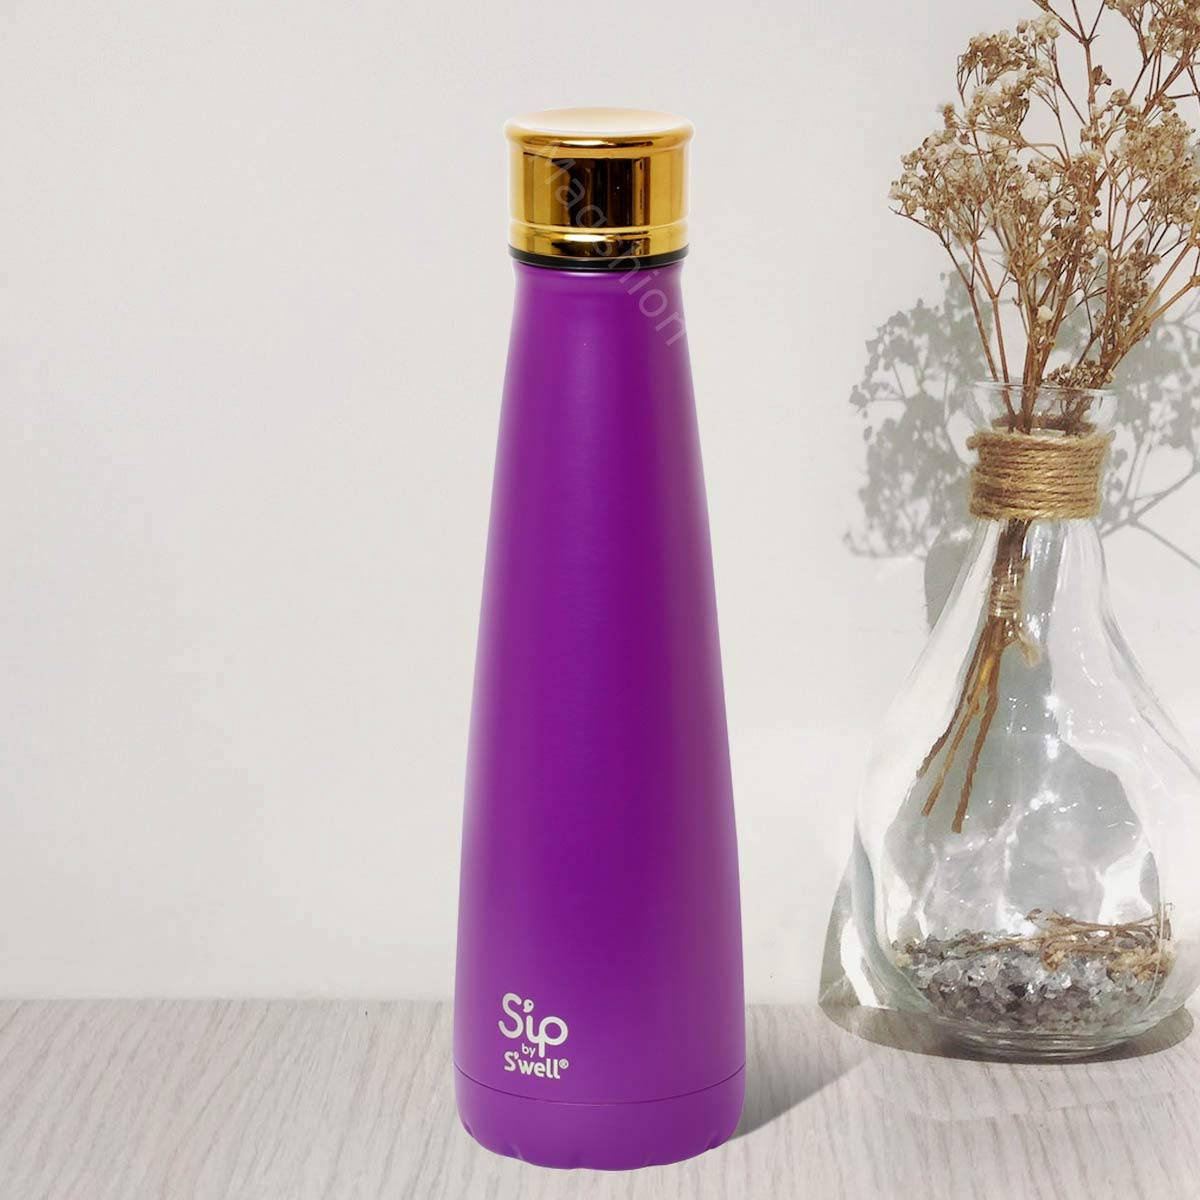 Magshion Sip by Swell Hydration Bottle Insulated Tumbler Sport Bottles